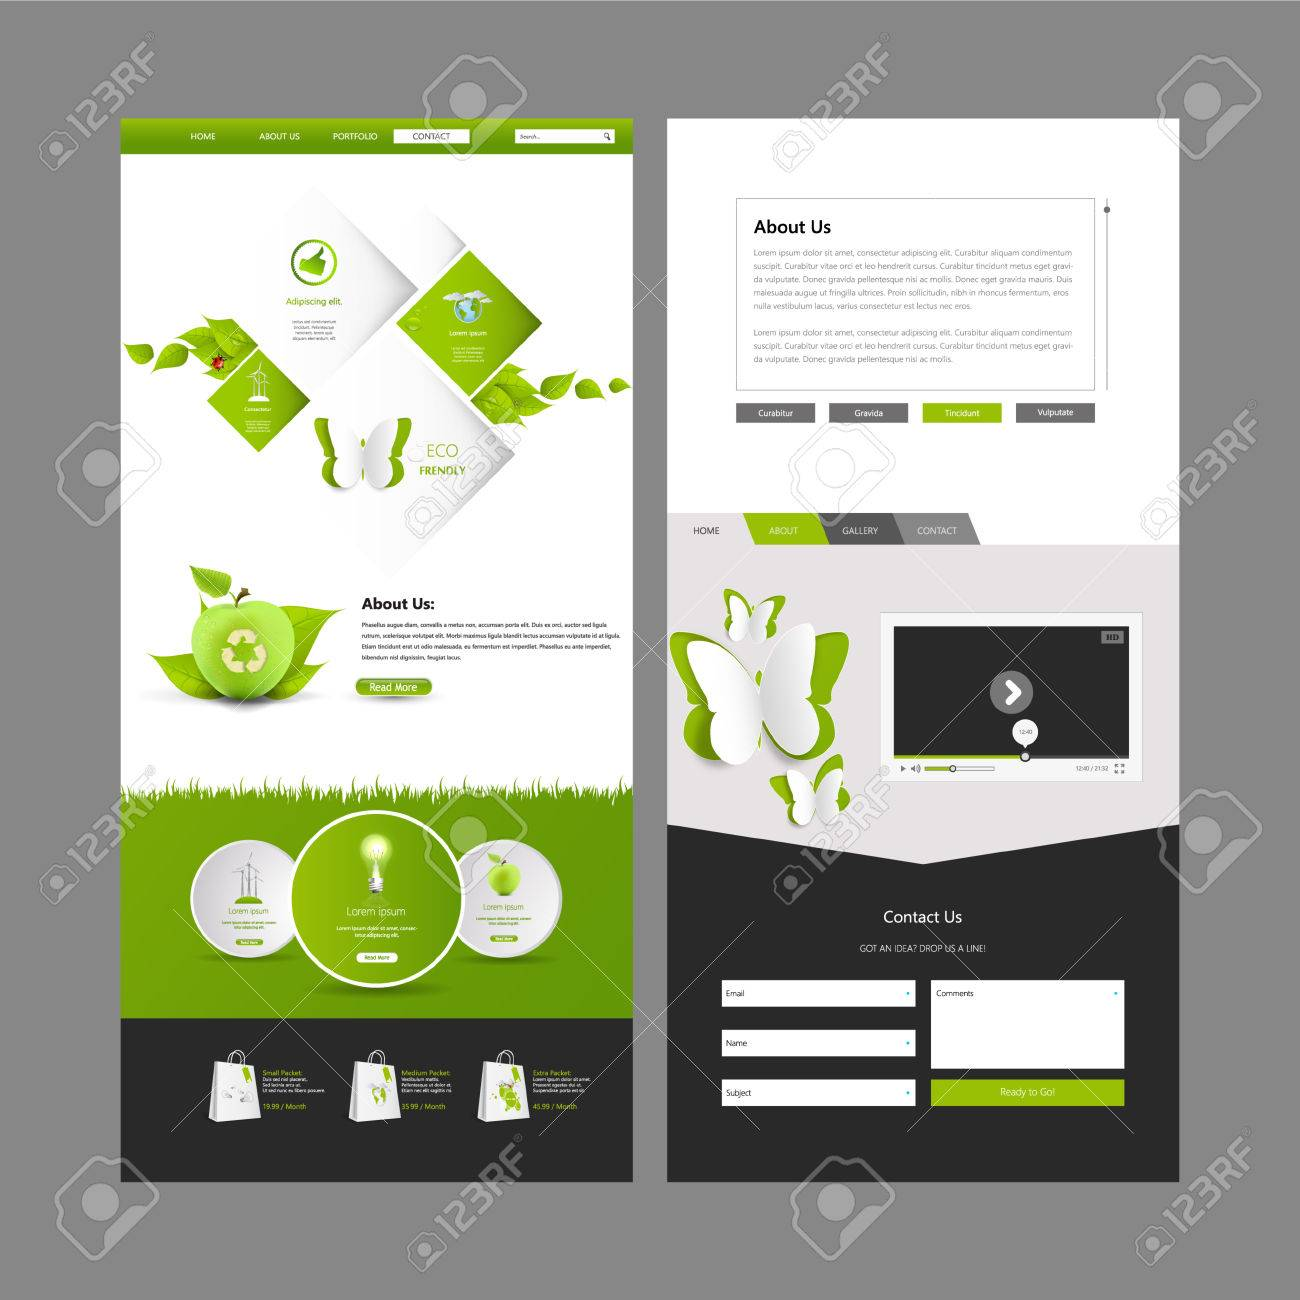 Great 2 Page Resume Template Word Tall 2014 Sample Resume Templates Regular 2015 Calendar Template 2015 Printable Calendar Template Old 3d Character Modeler Resume Soft3d Powerpoint Presentation Templates One Page Website Template Designs And Header Royalty Free Cliparts ..